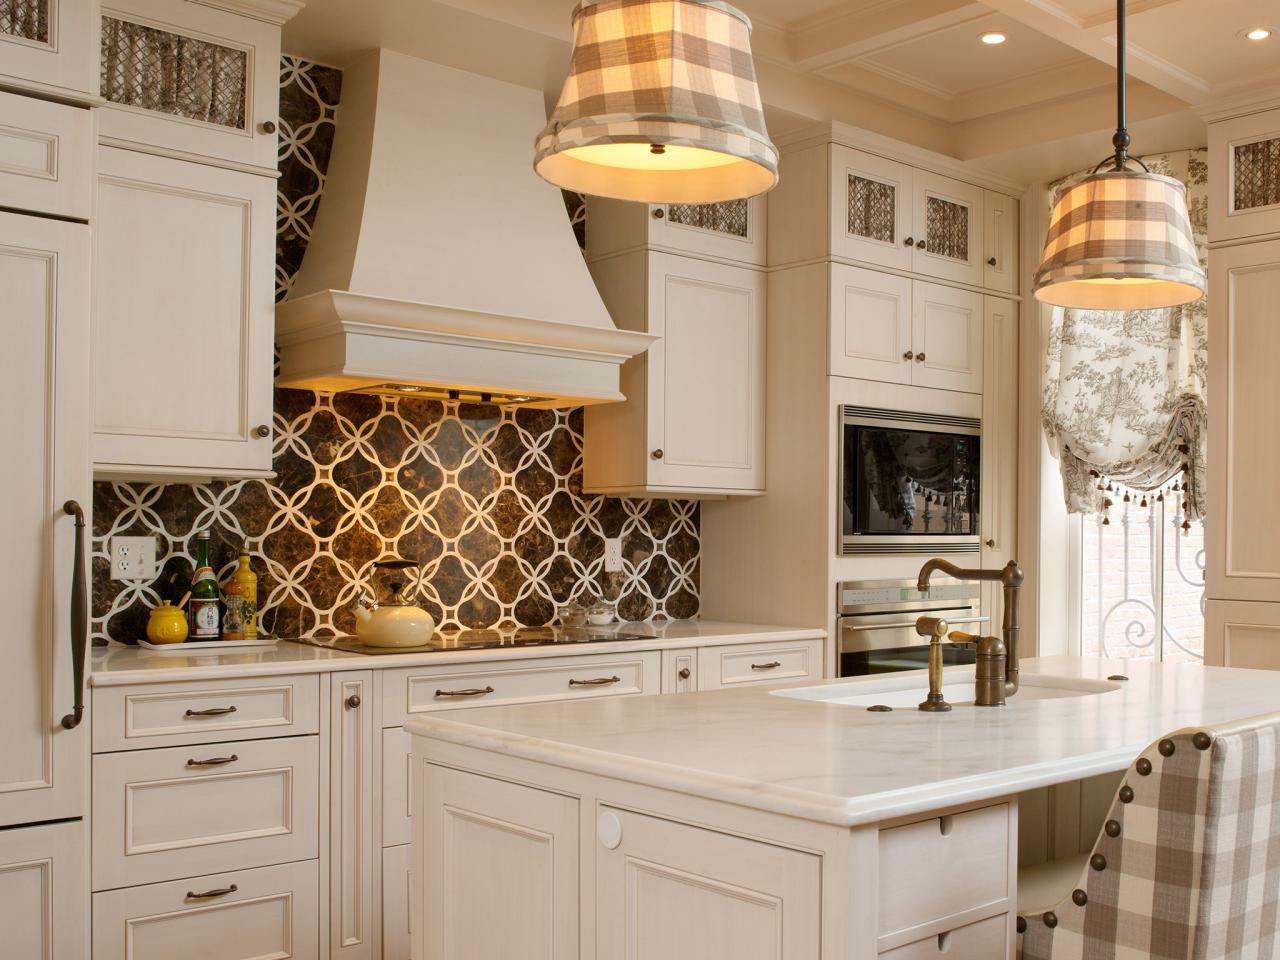 Kitchen Back Splash Kitchen Backsplash Design Ideas Hgtv